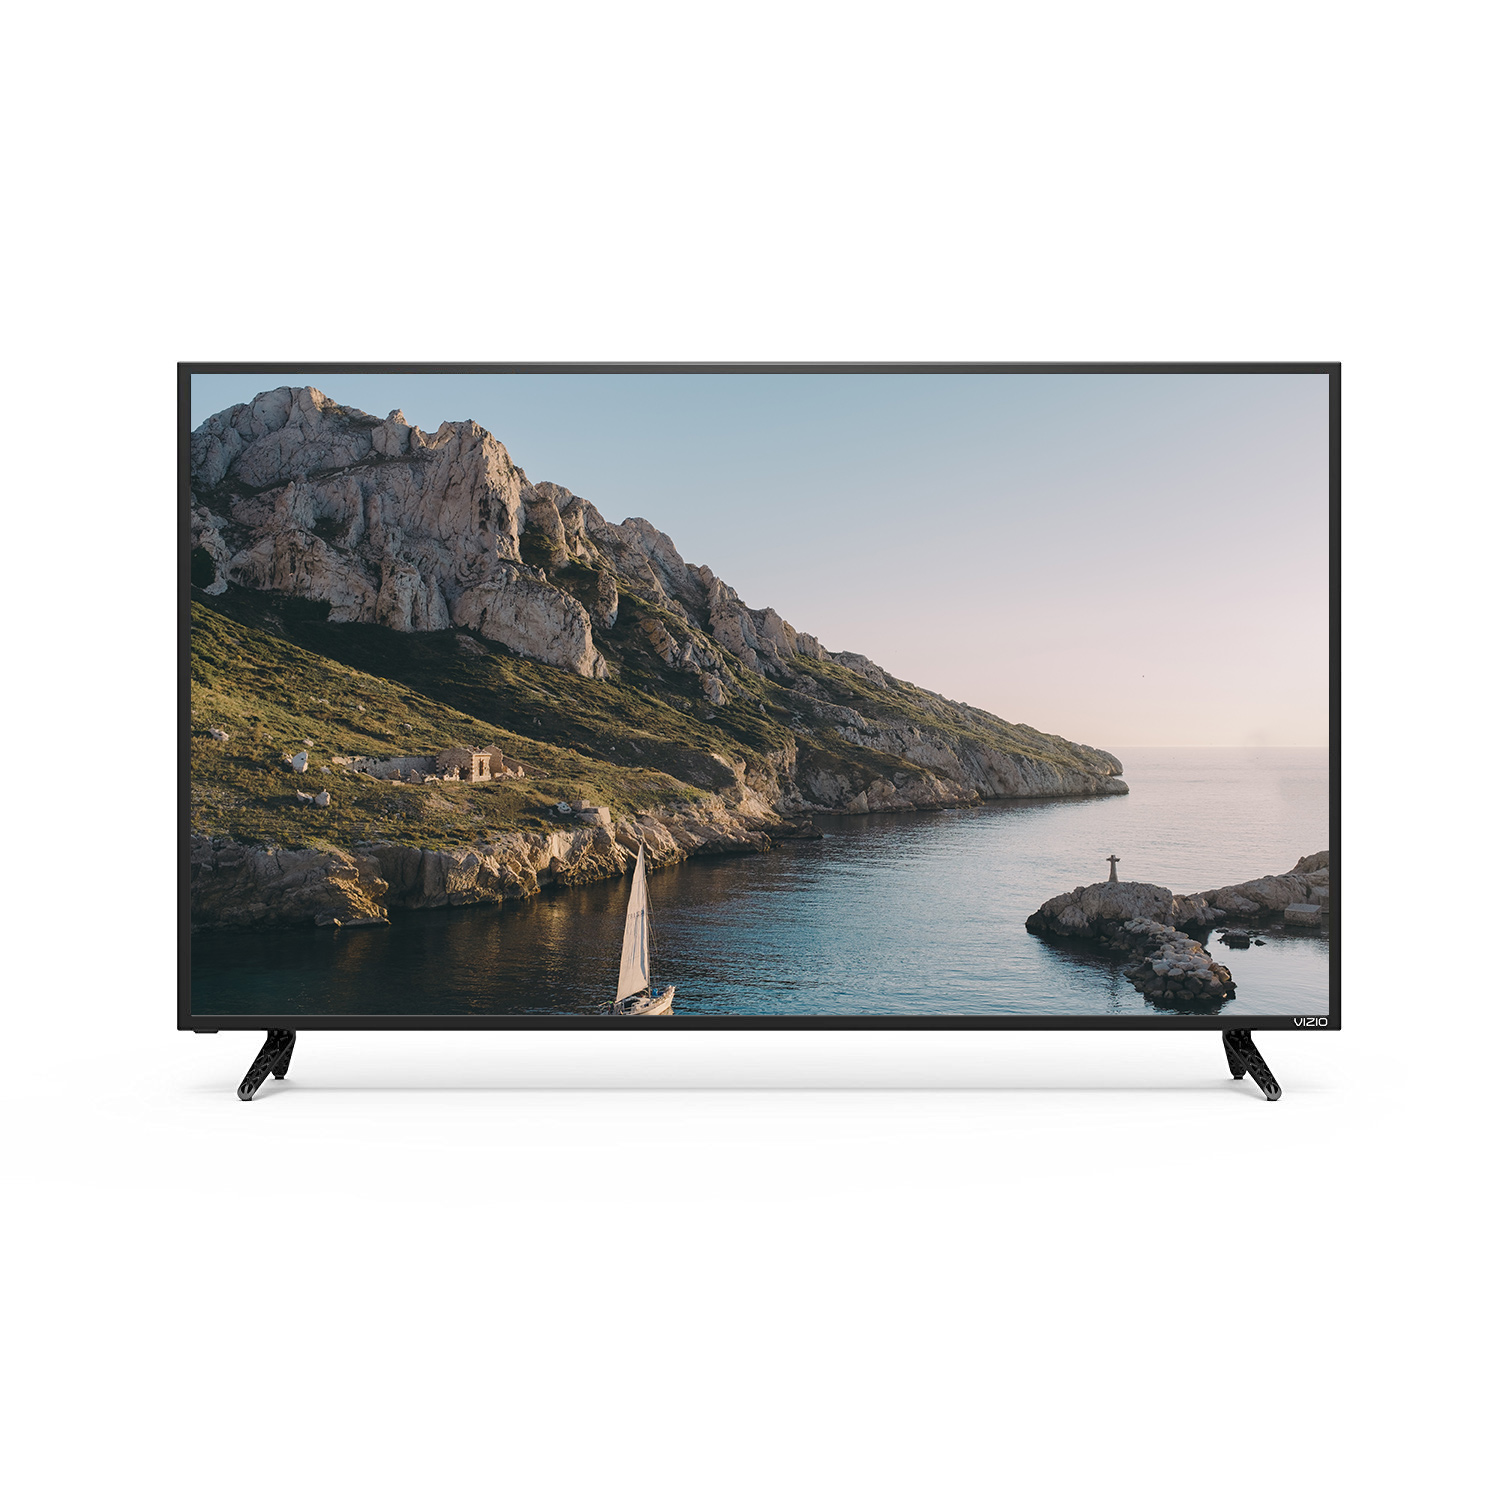 Vizio Smartcast E60-E3 UHD Home Theater Display E Series 60""